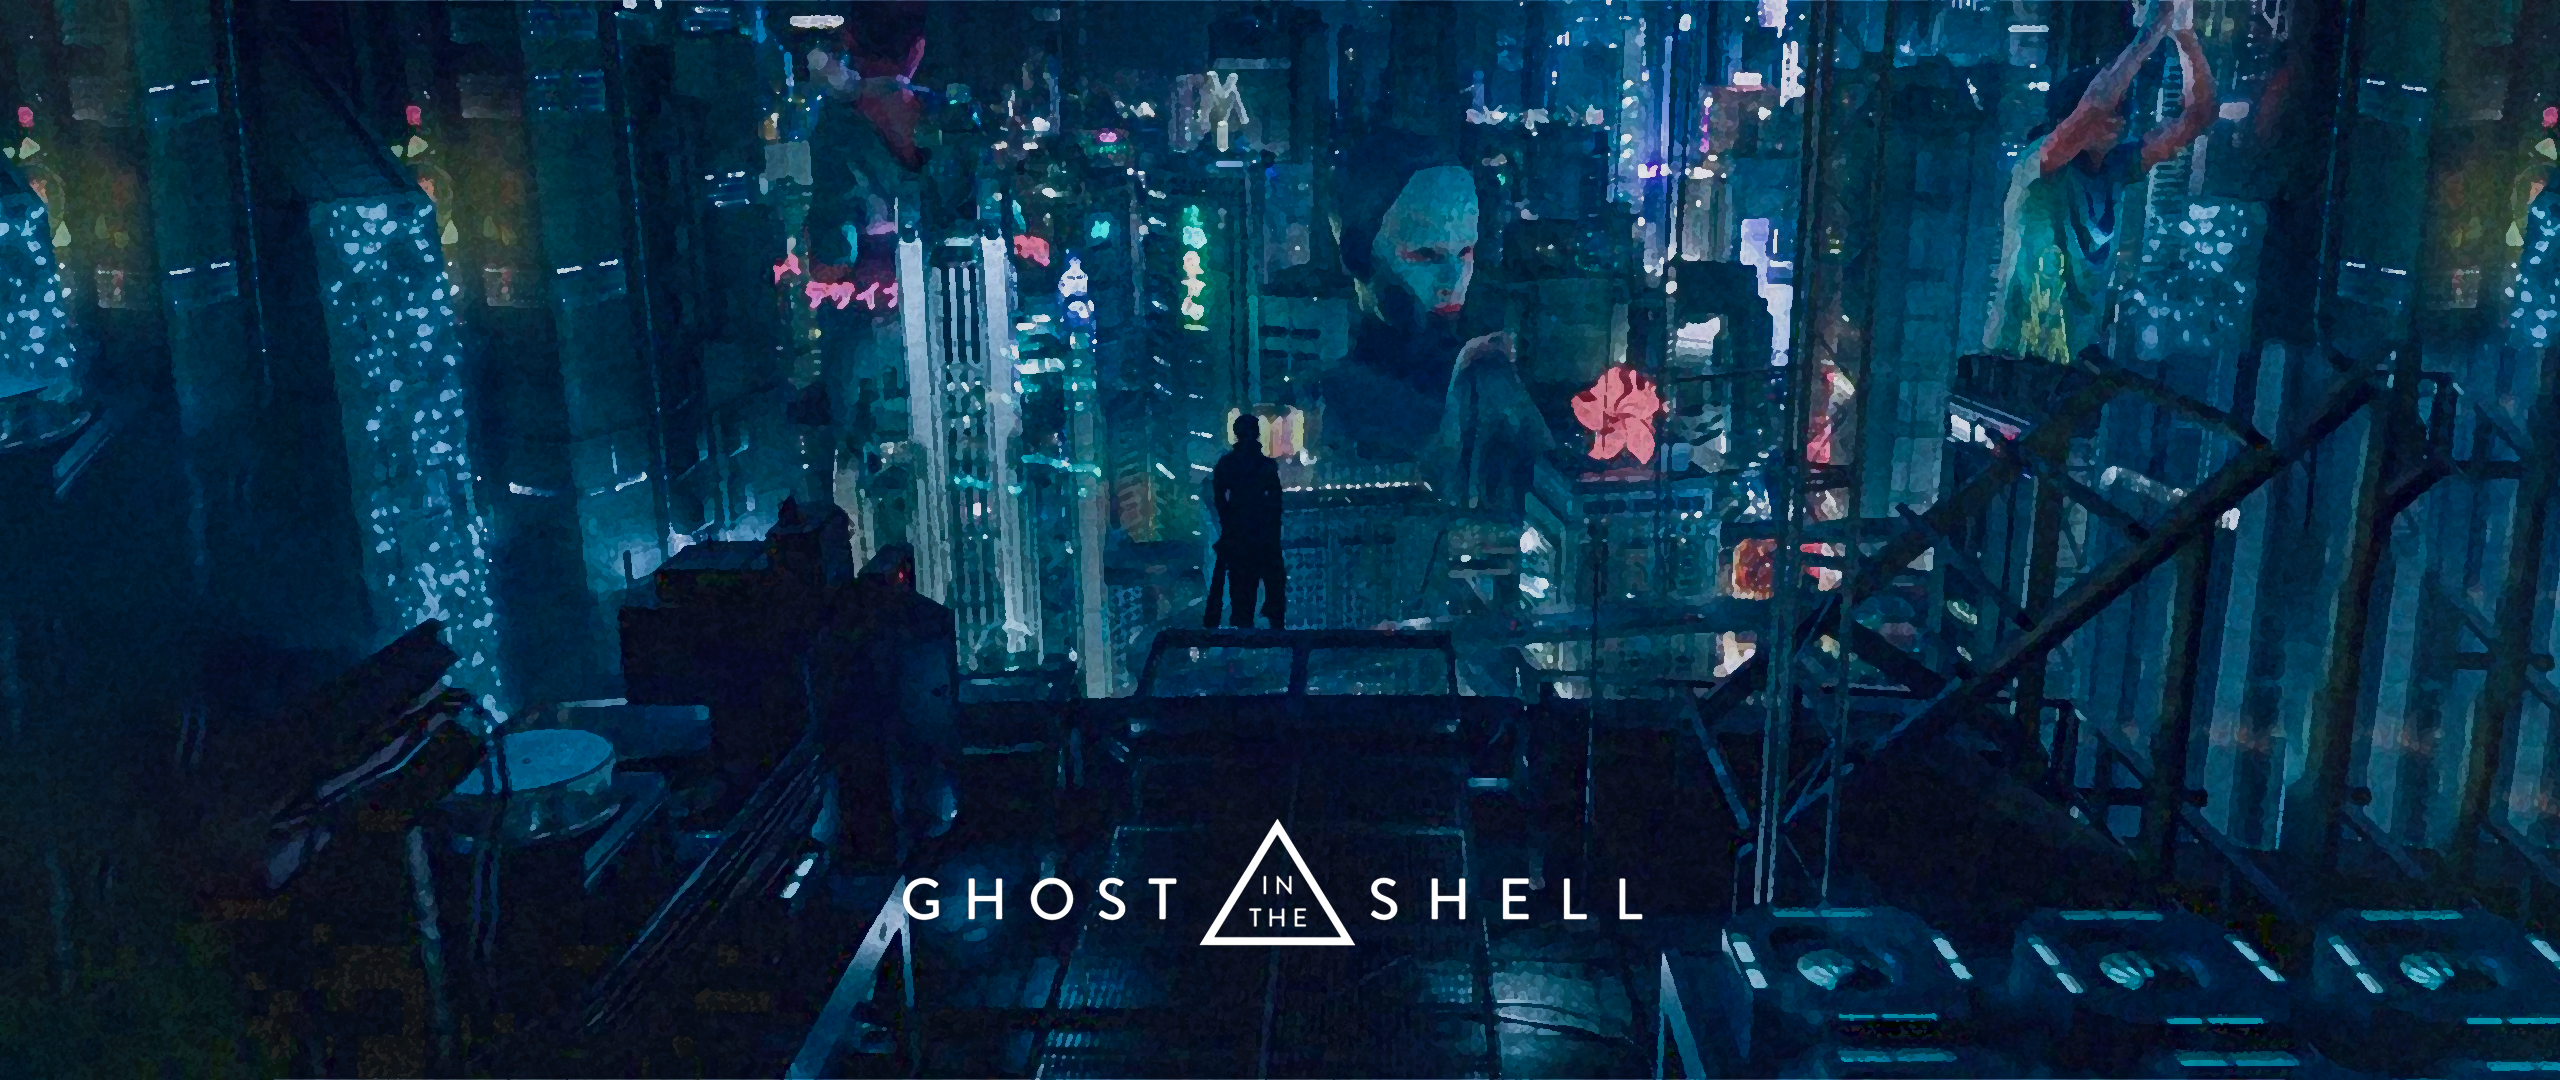 Ghost In The Shell 2017 Wallpaper 2560x1080 Png By Kenshi337 On